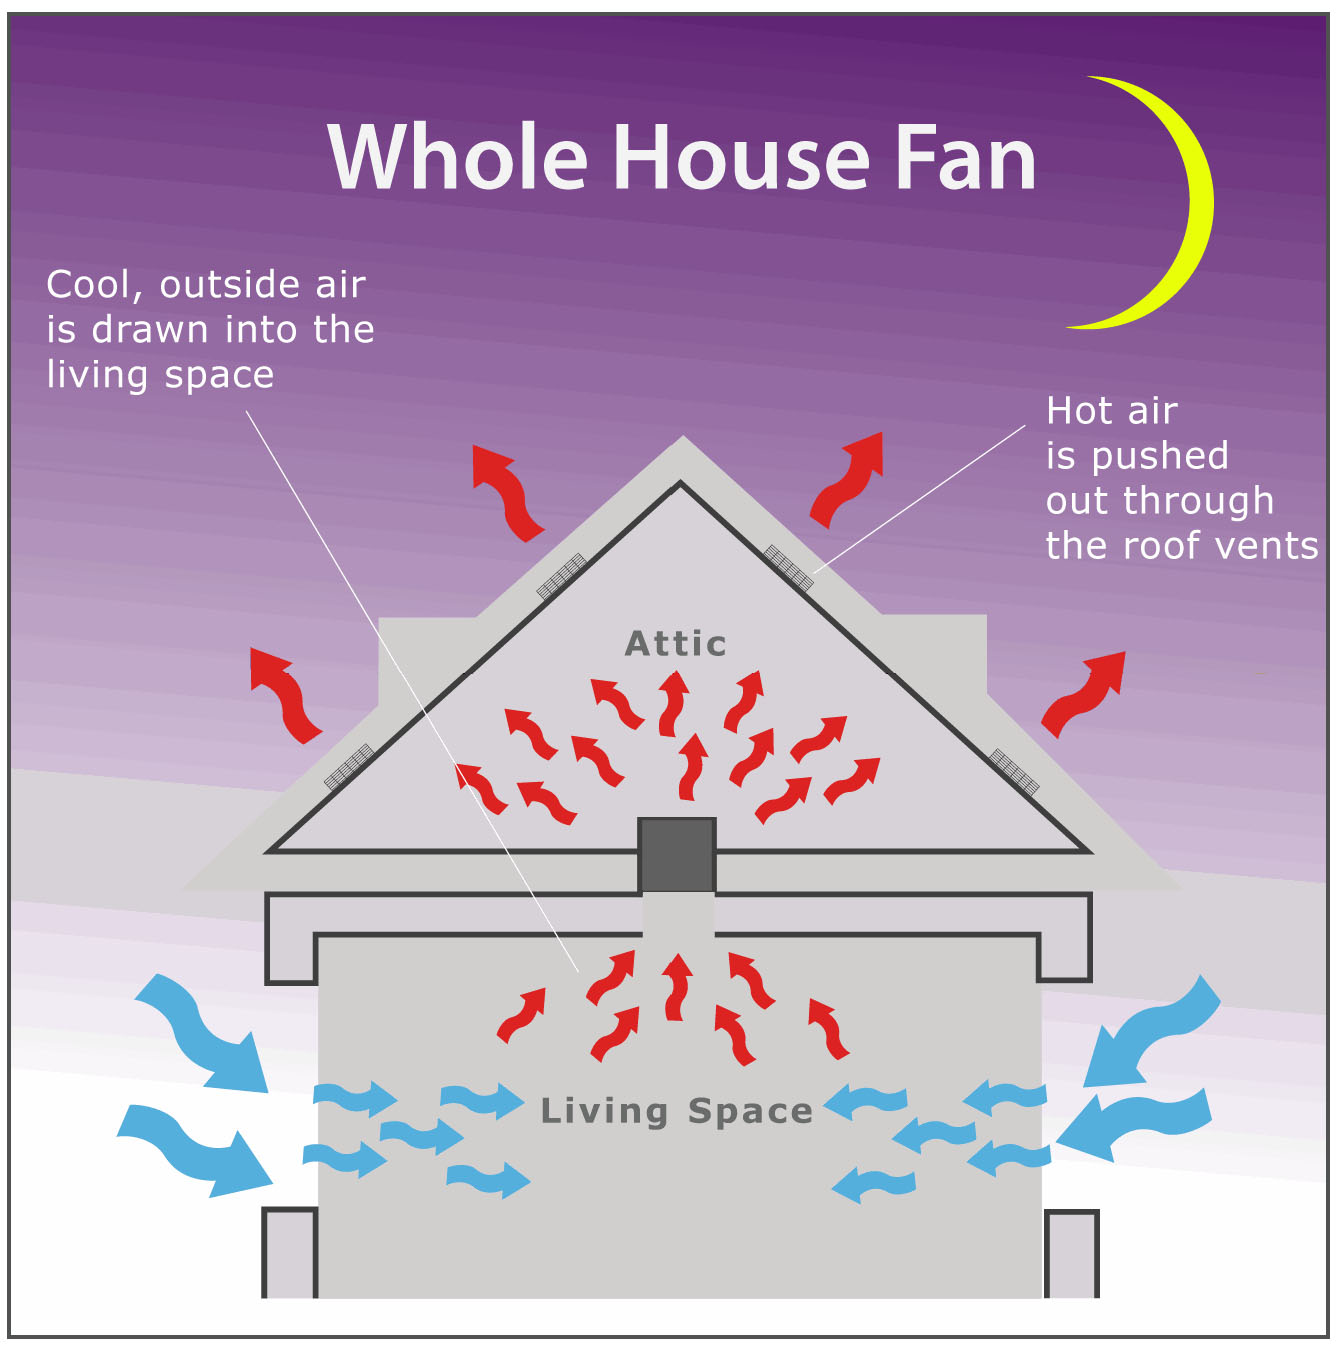 Whole House Mechanical Ventilation System : Whole house fan installation santa clara san jose